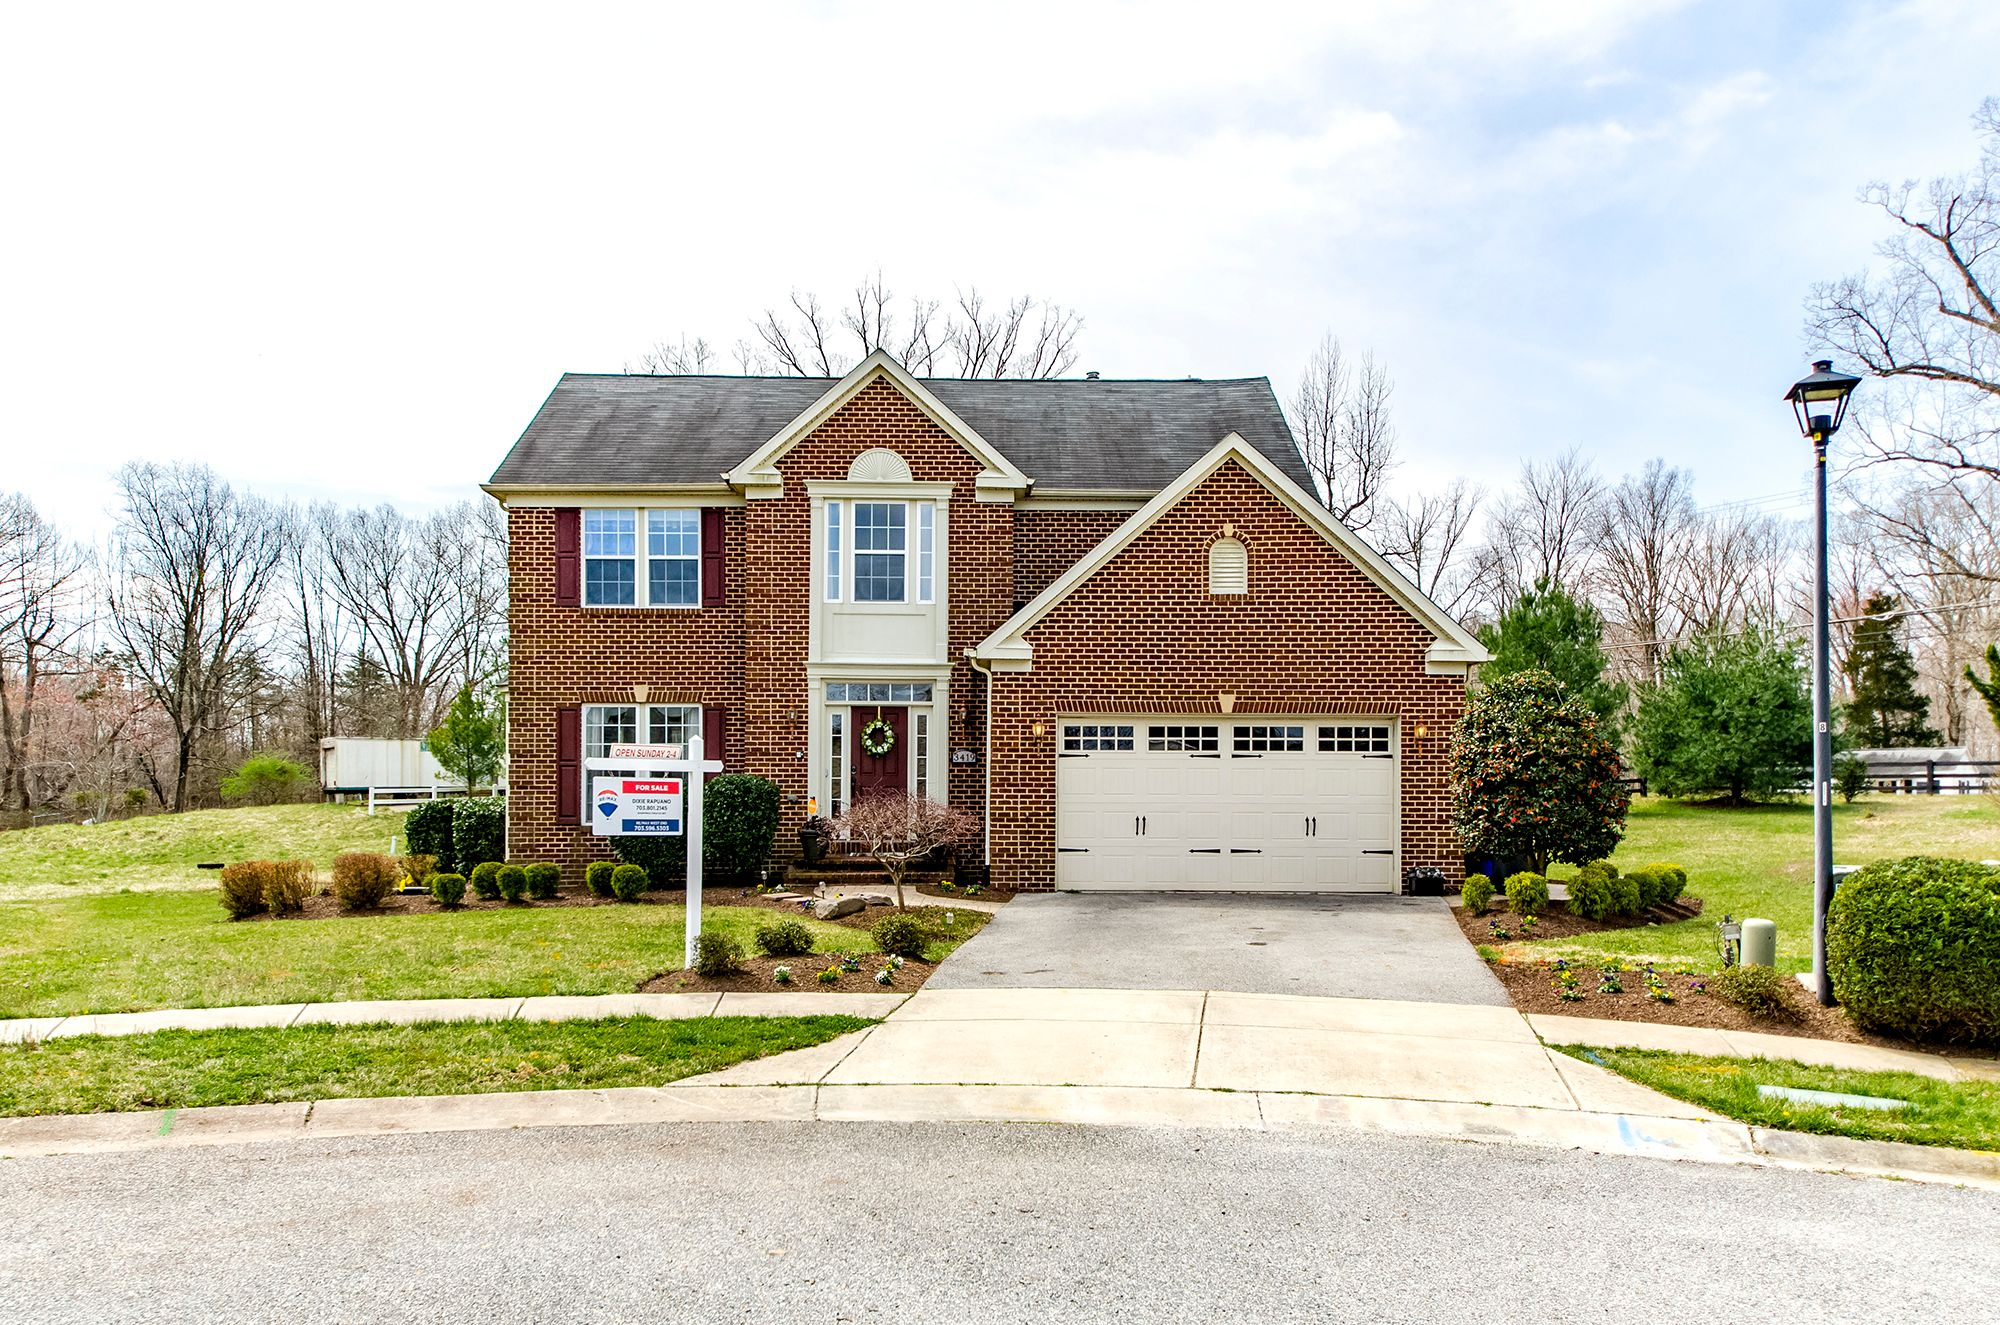 Incredible 3419 Yarnell Ct Waldorf Md 20603 4 Bed 4 Bath Single Family Home Mls Mdch200192 14 Photos Trulia Download Free Architecture Designs Scobabritishbridgeorg